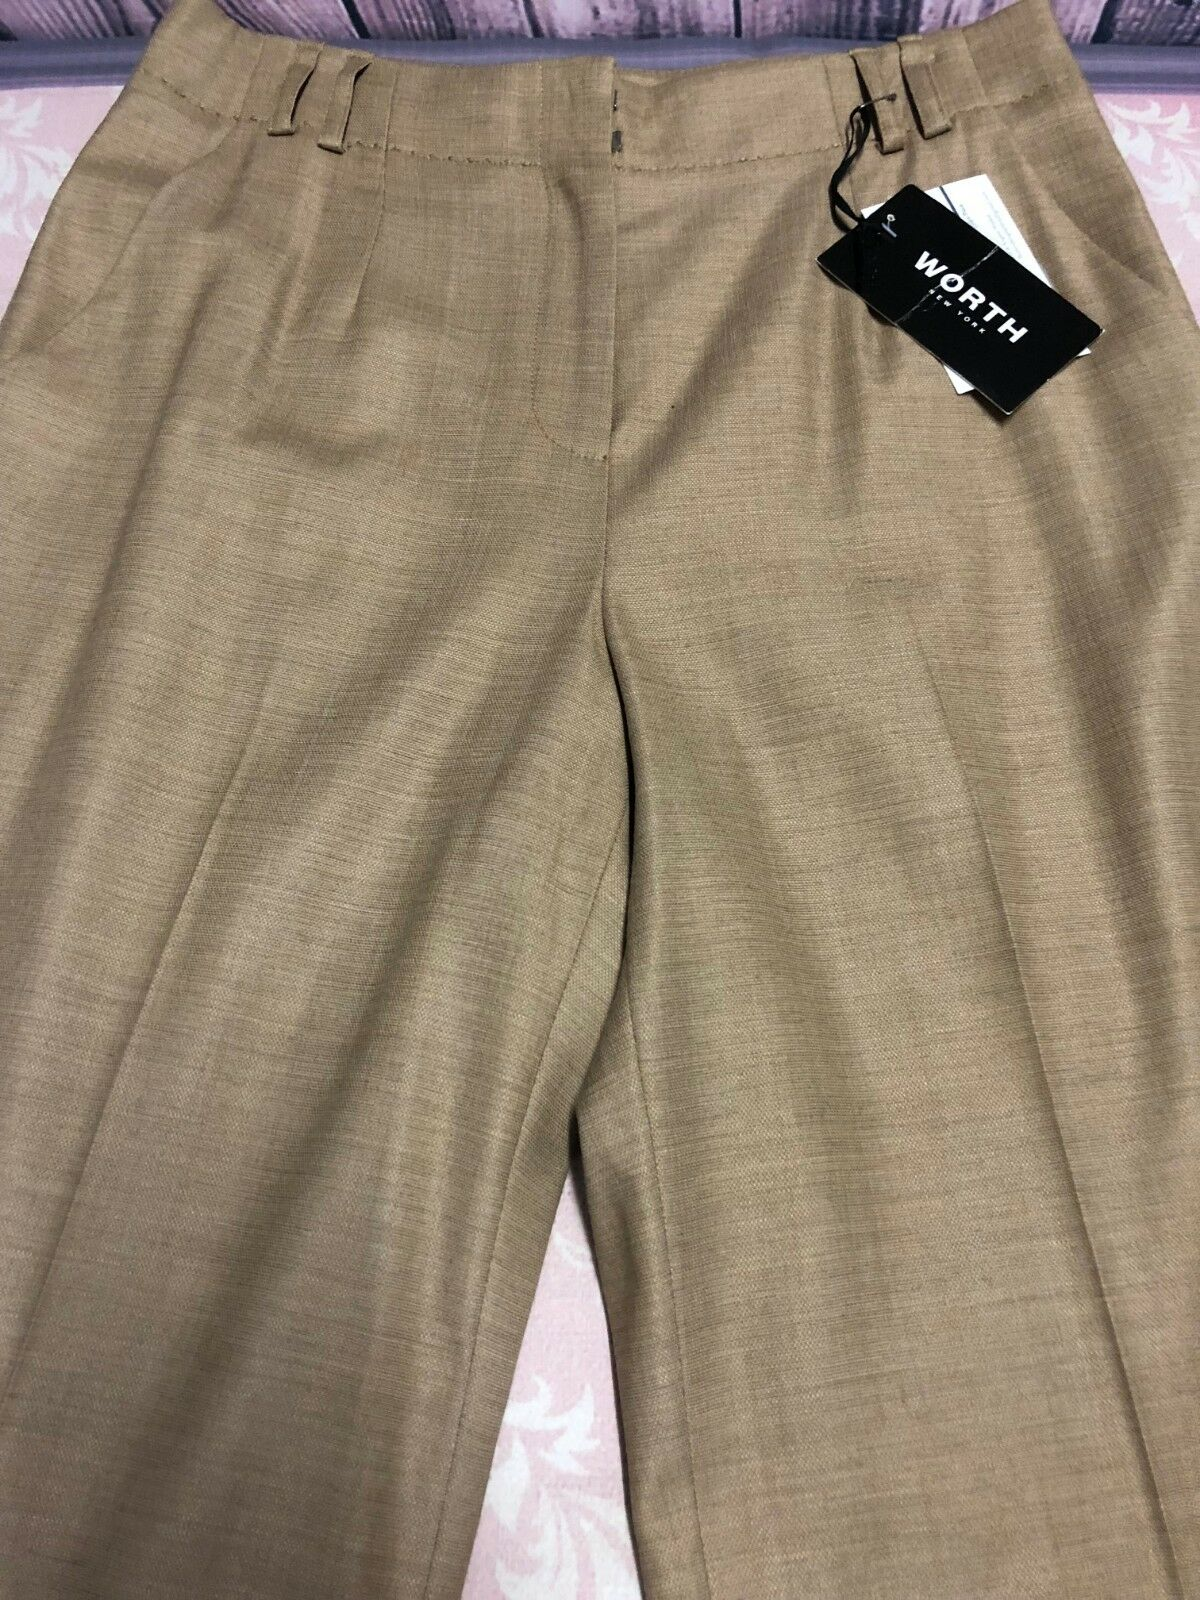 Worth NY Women's Pants Tan Wool Blend Fully Lined Pants Size 2 NWT